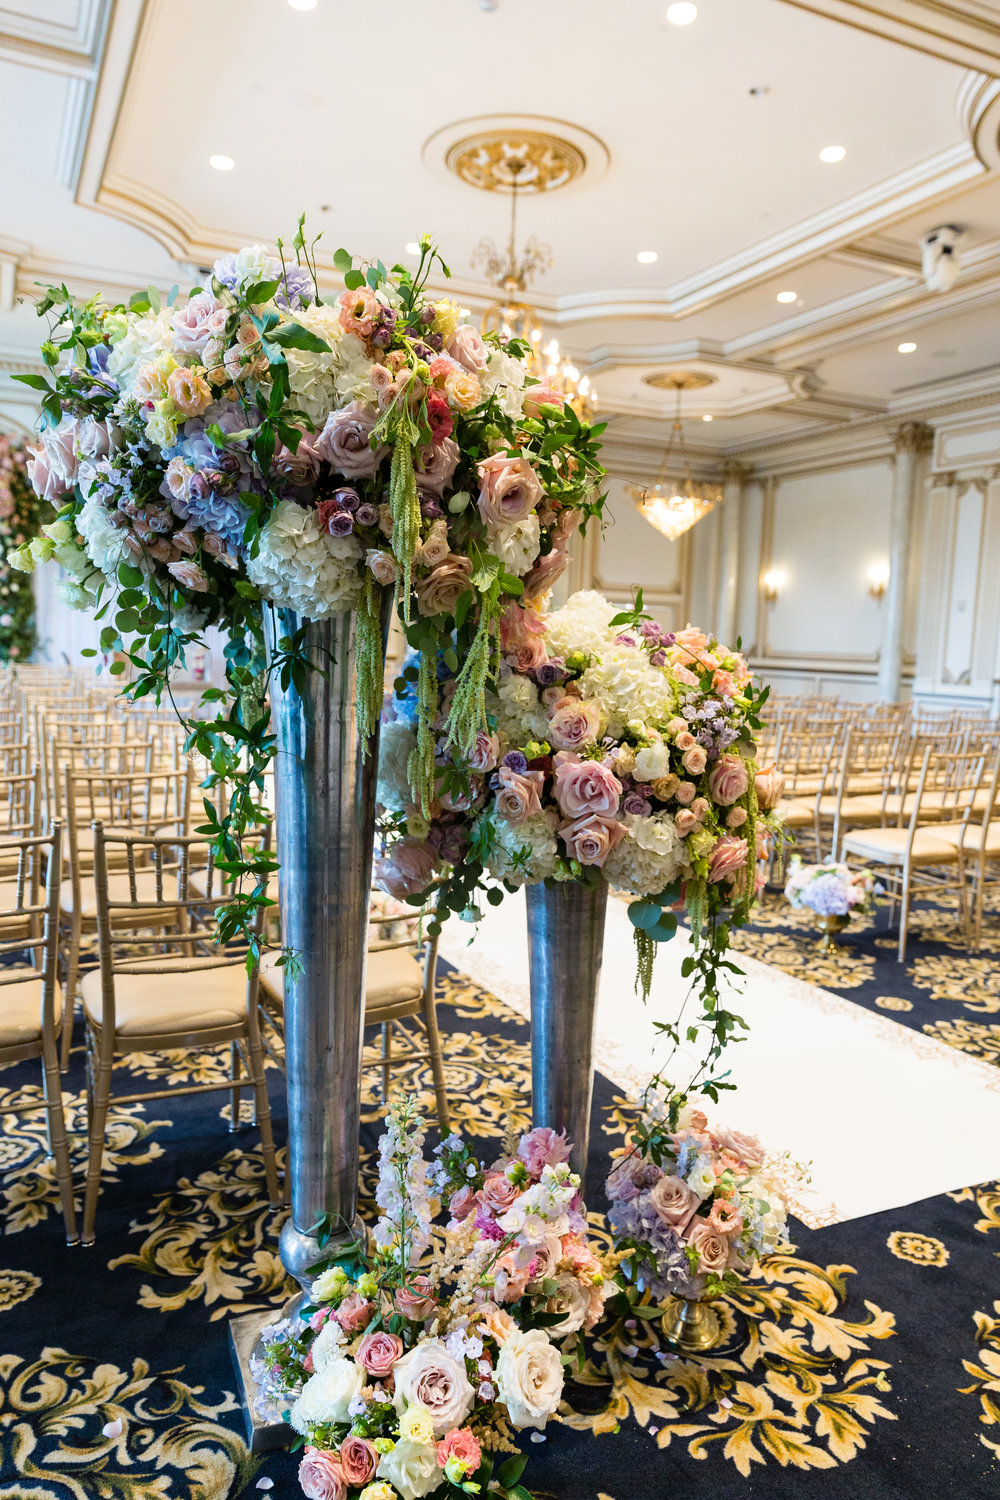 INDIAN WEDDING CEREMONY FLOWER CENTERPIECES.jpg